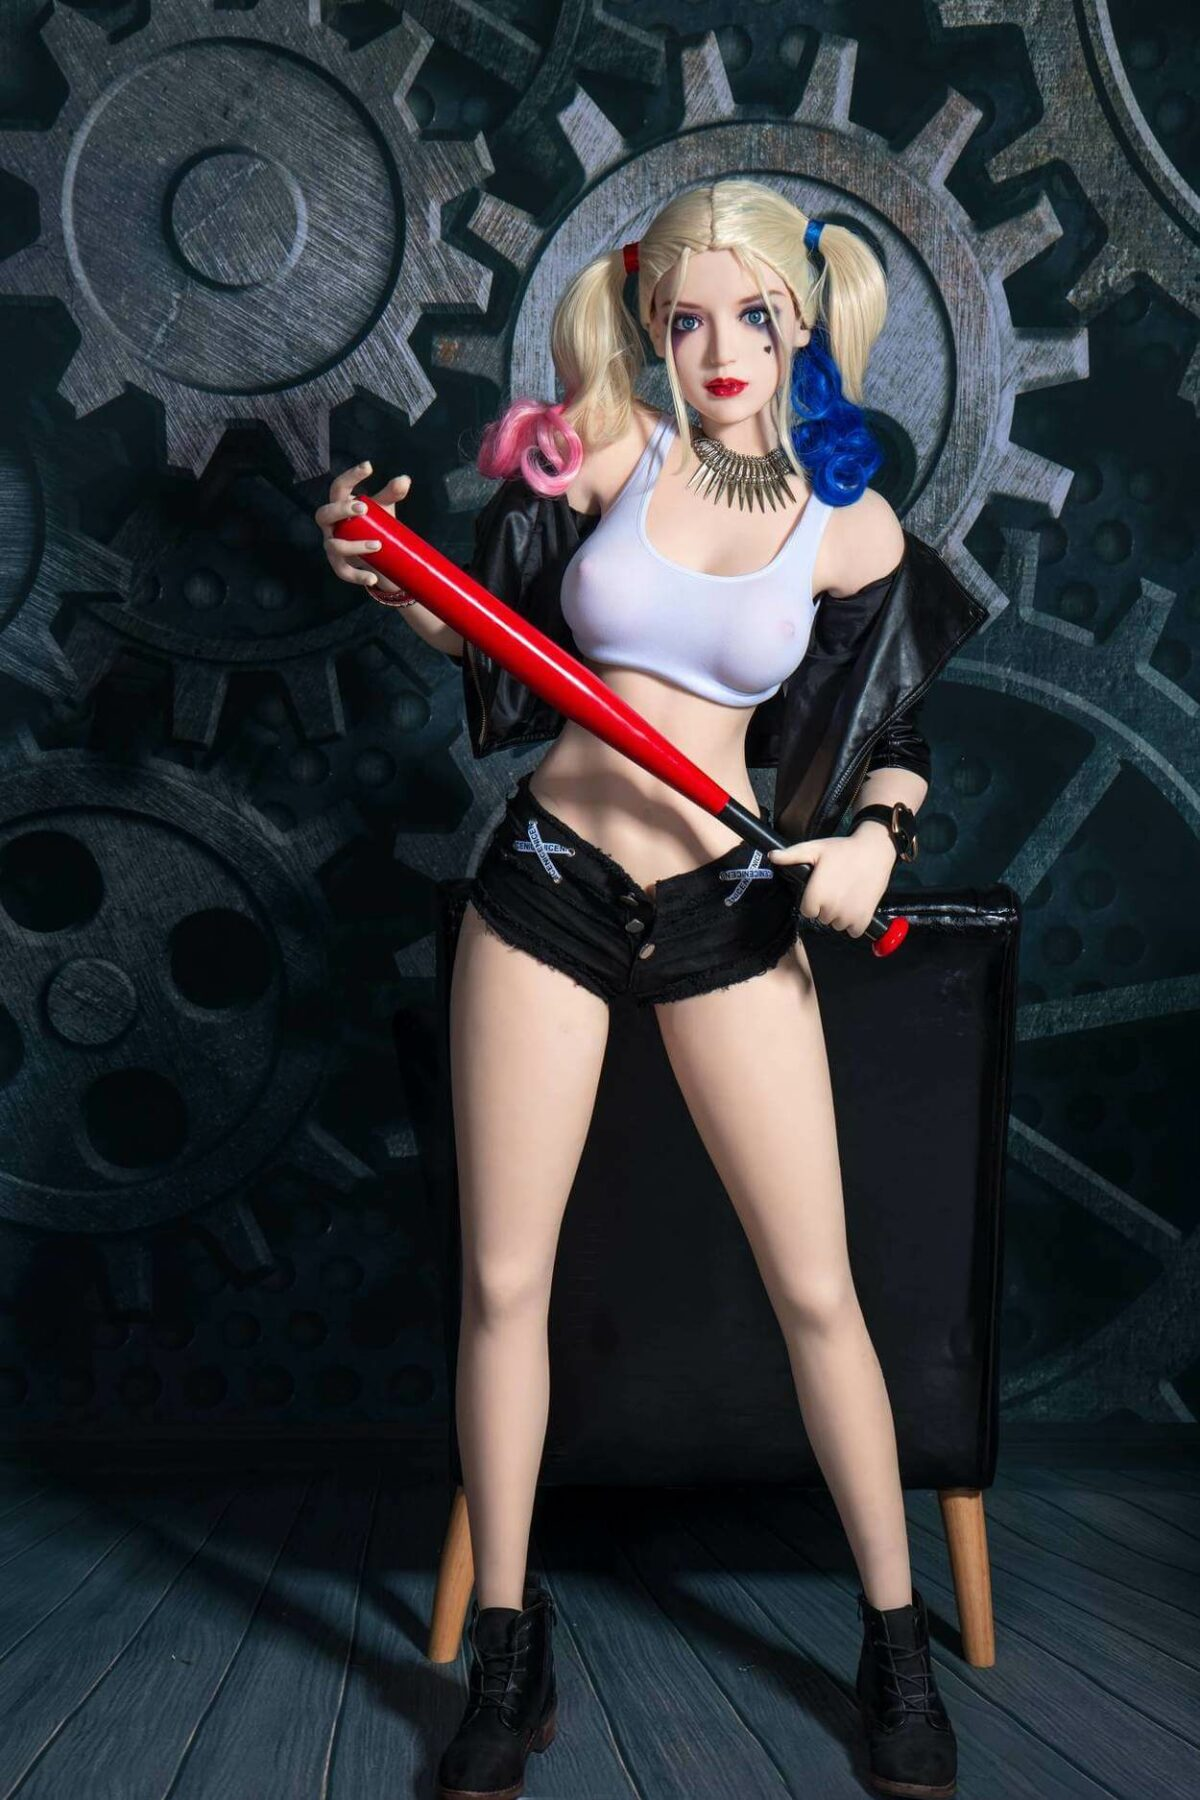 Anime Sex Doll - Harley Quinn